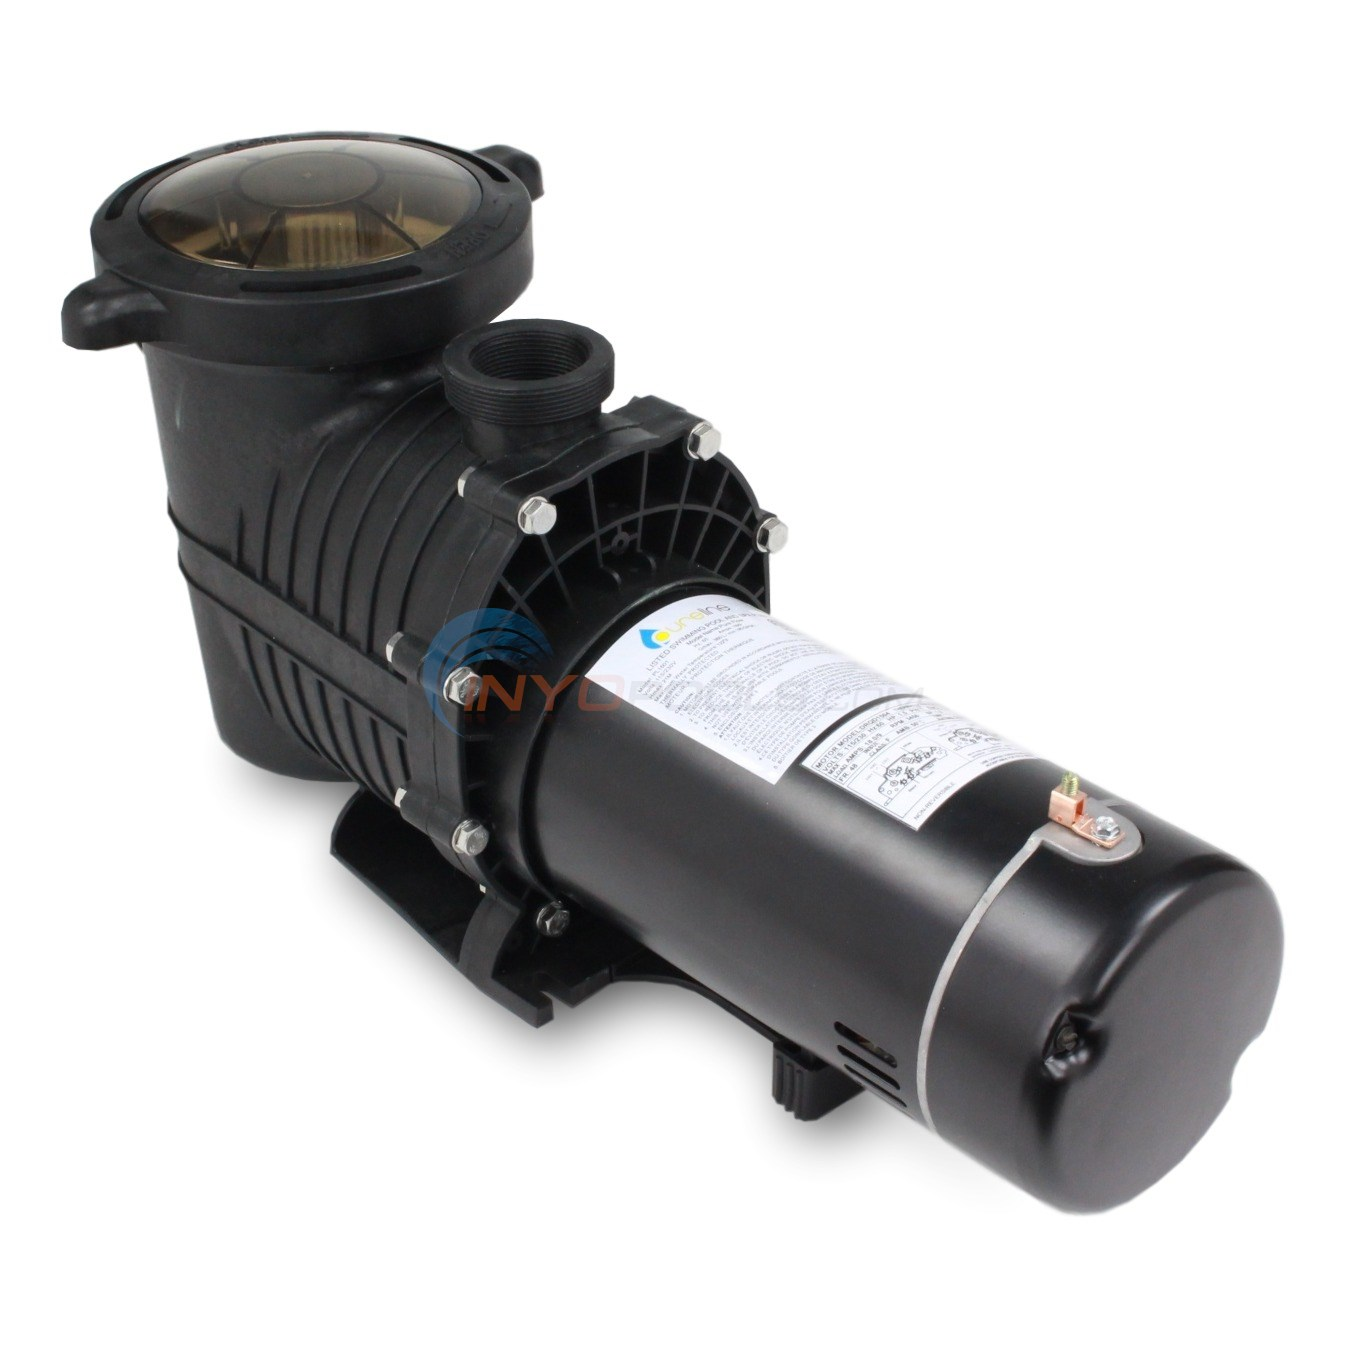 Wiring diagram radiant water systems 2hp pool pump model 72744nc 64 wiring diagram images for Swimming pool pump electrical wiring